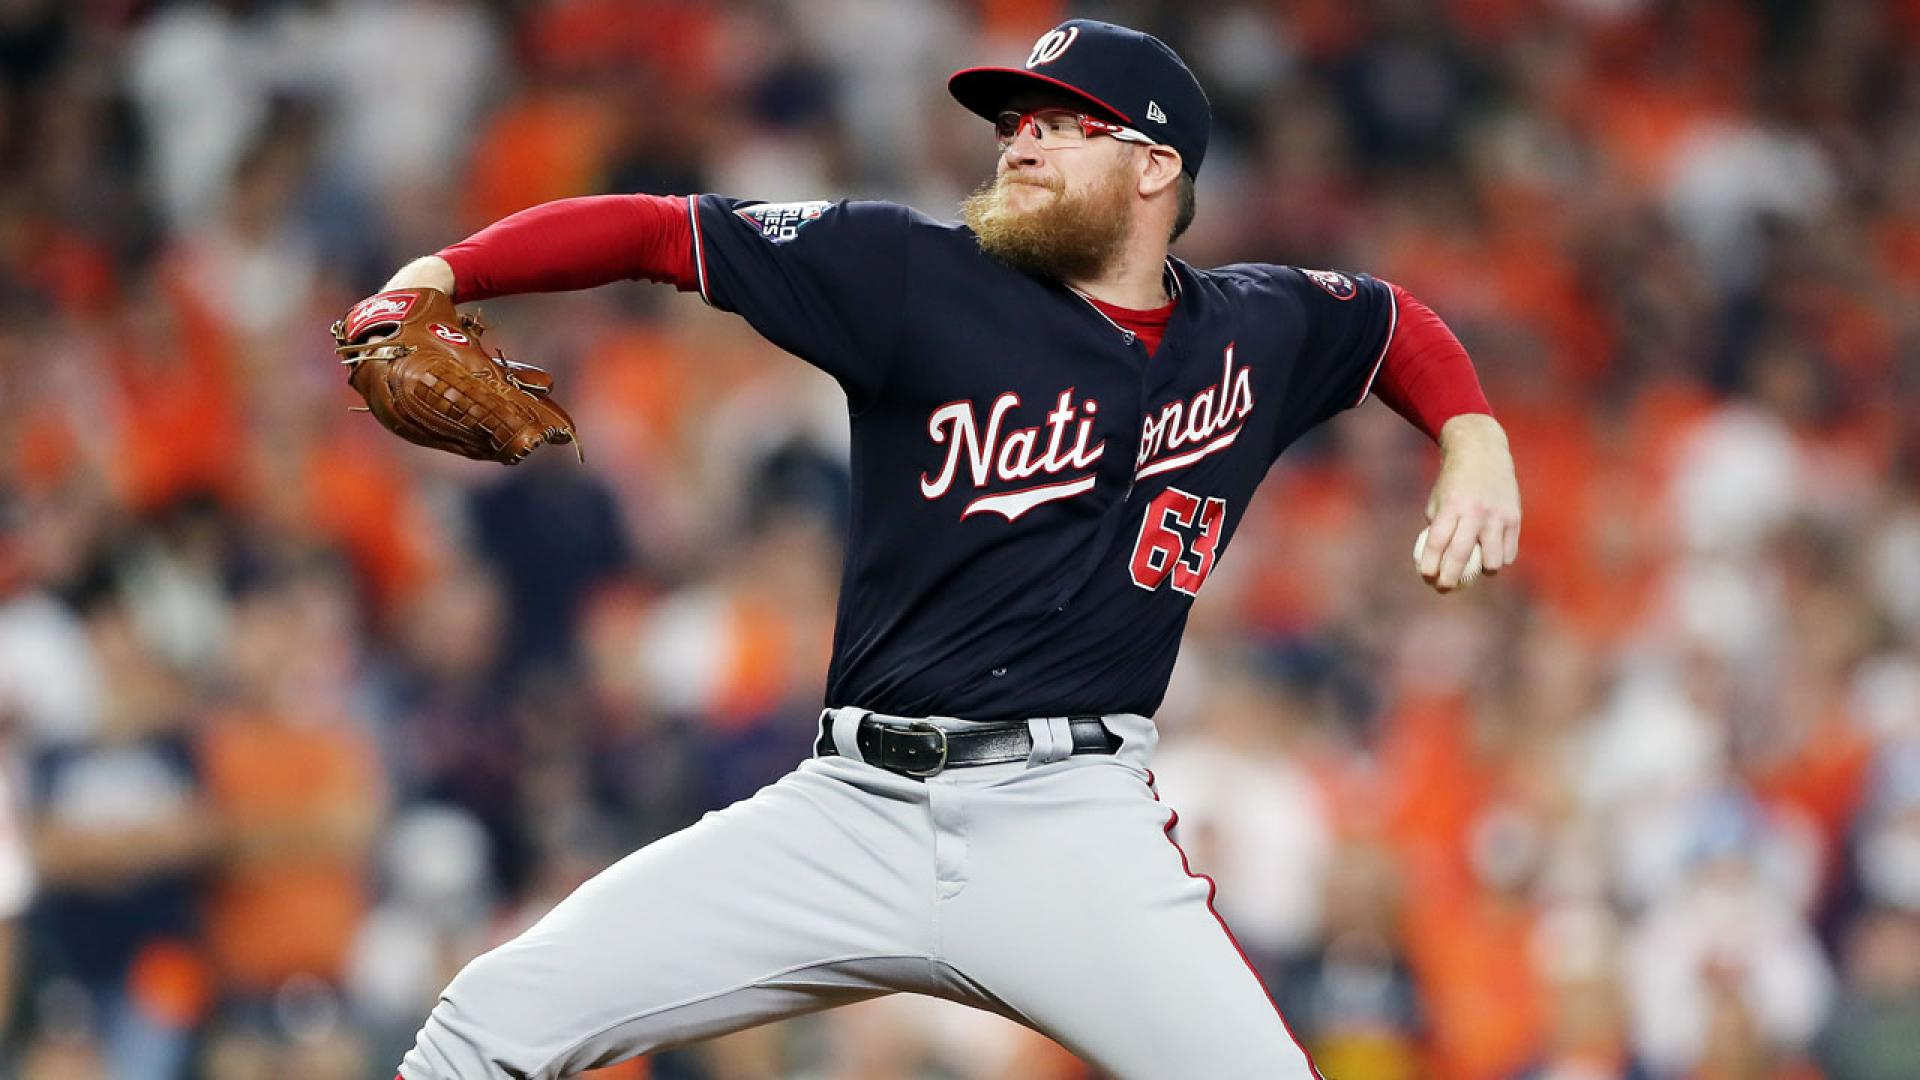 Washington Nationals Star Declines White House Visit After Historic World Series Win